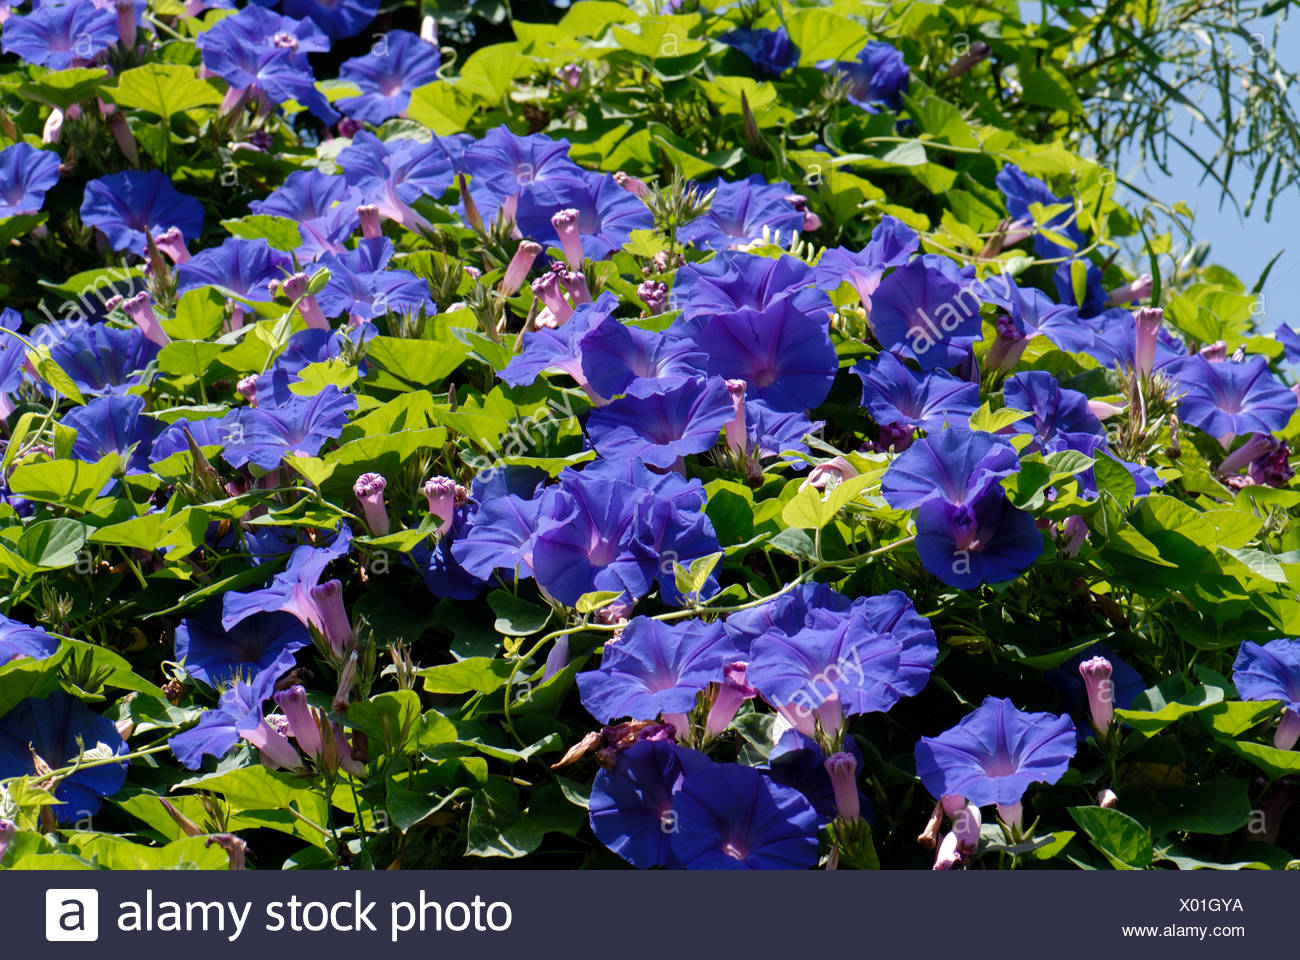 Blue flowers of morning glory Ipomoea spp in full bloom in a Crete garden - Stock Image